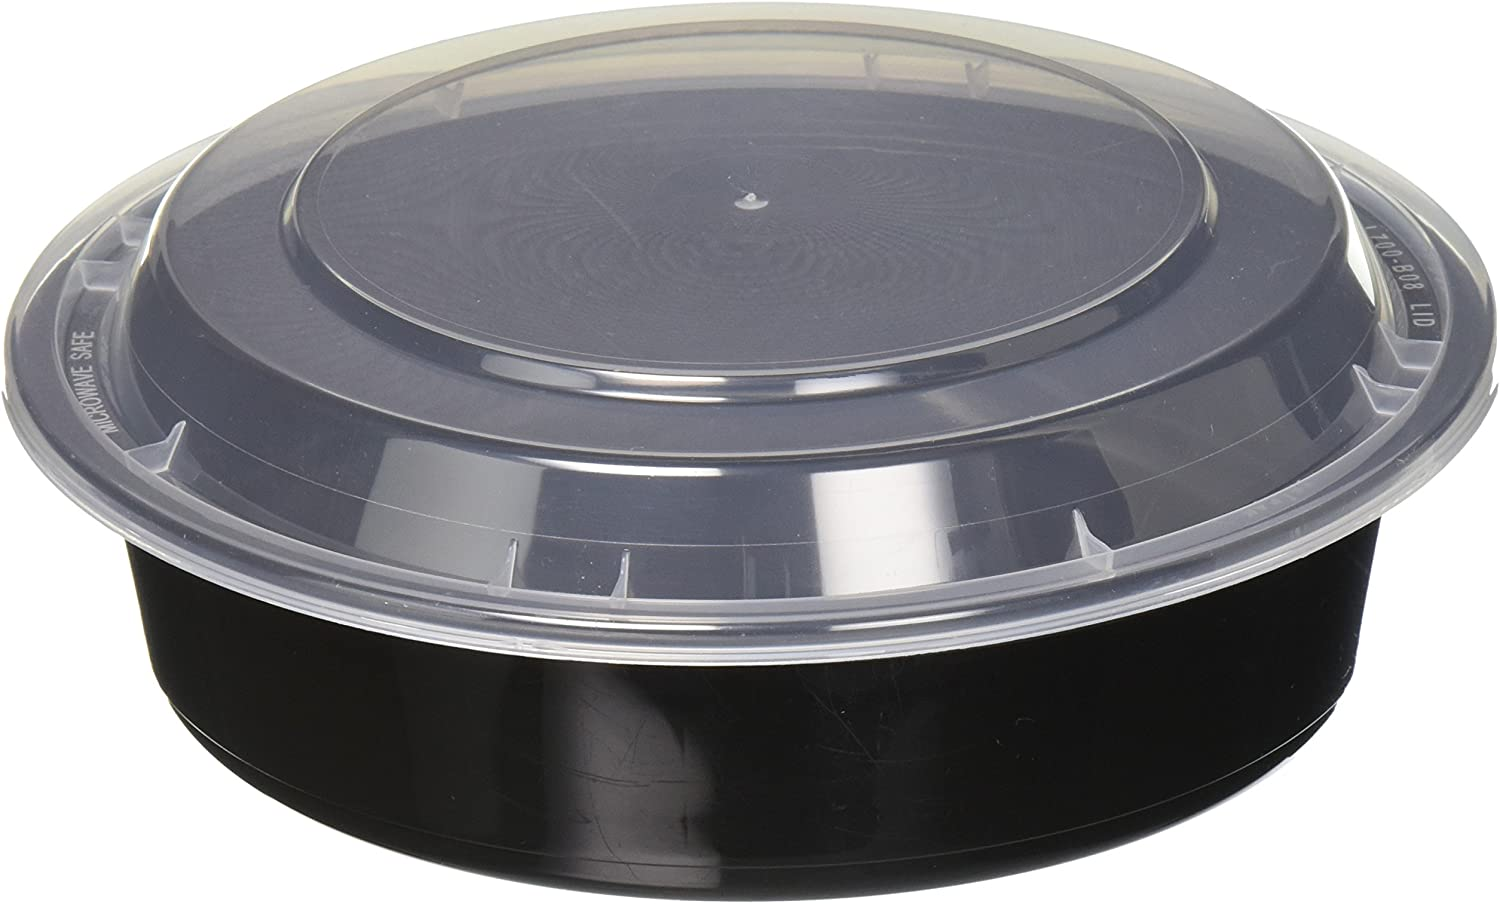 Reditainer - 16 Round Food Storage Containers with Lids - Microwaveable & Dishwasher safe (24 Ounce)